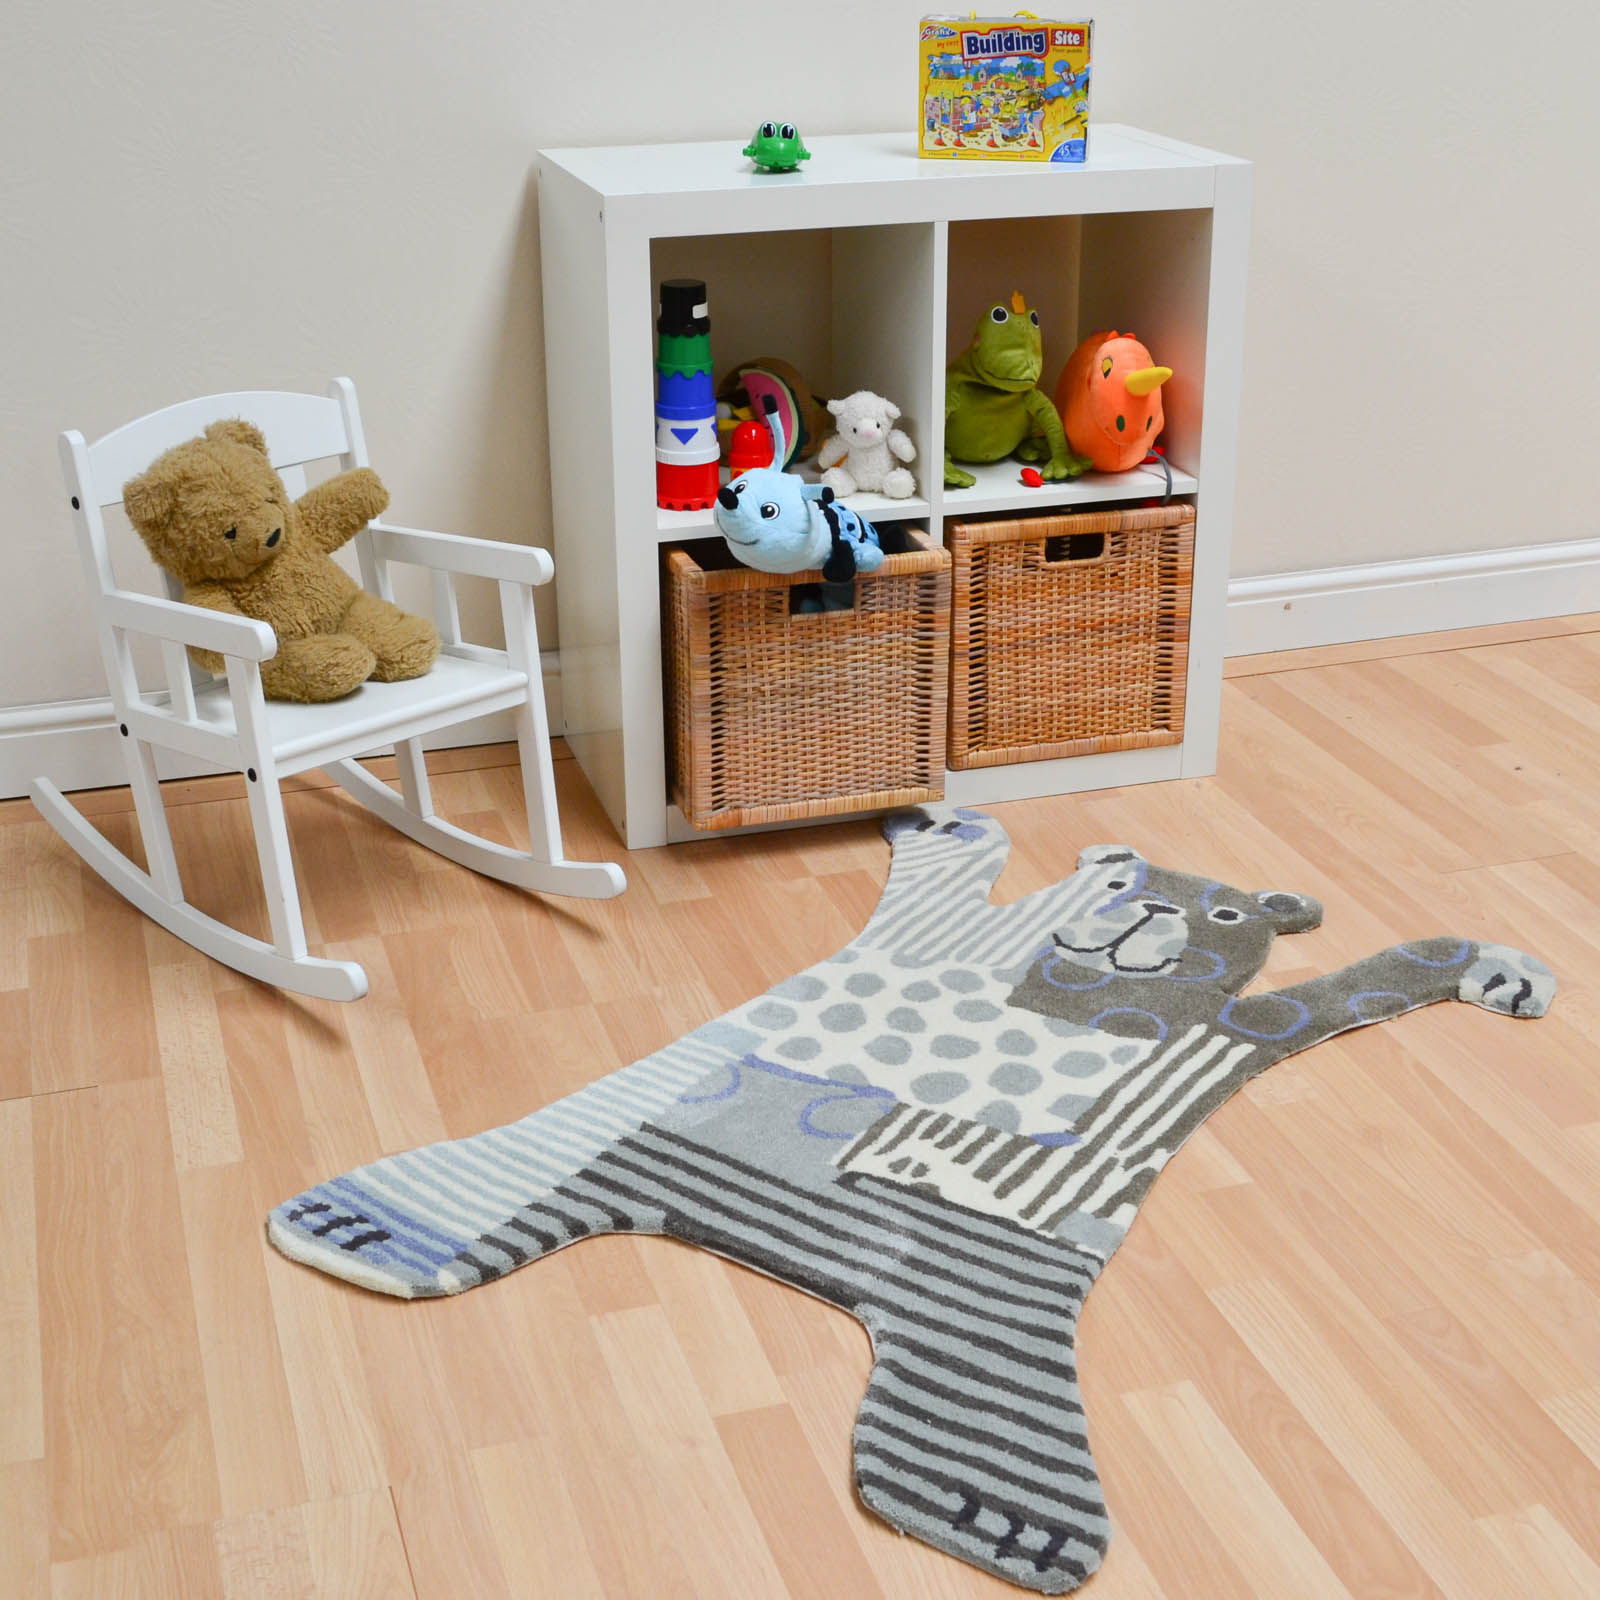 Xian Bear 41001 Kids Rugs by Brink and Campman